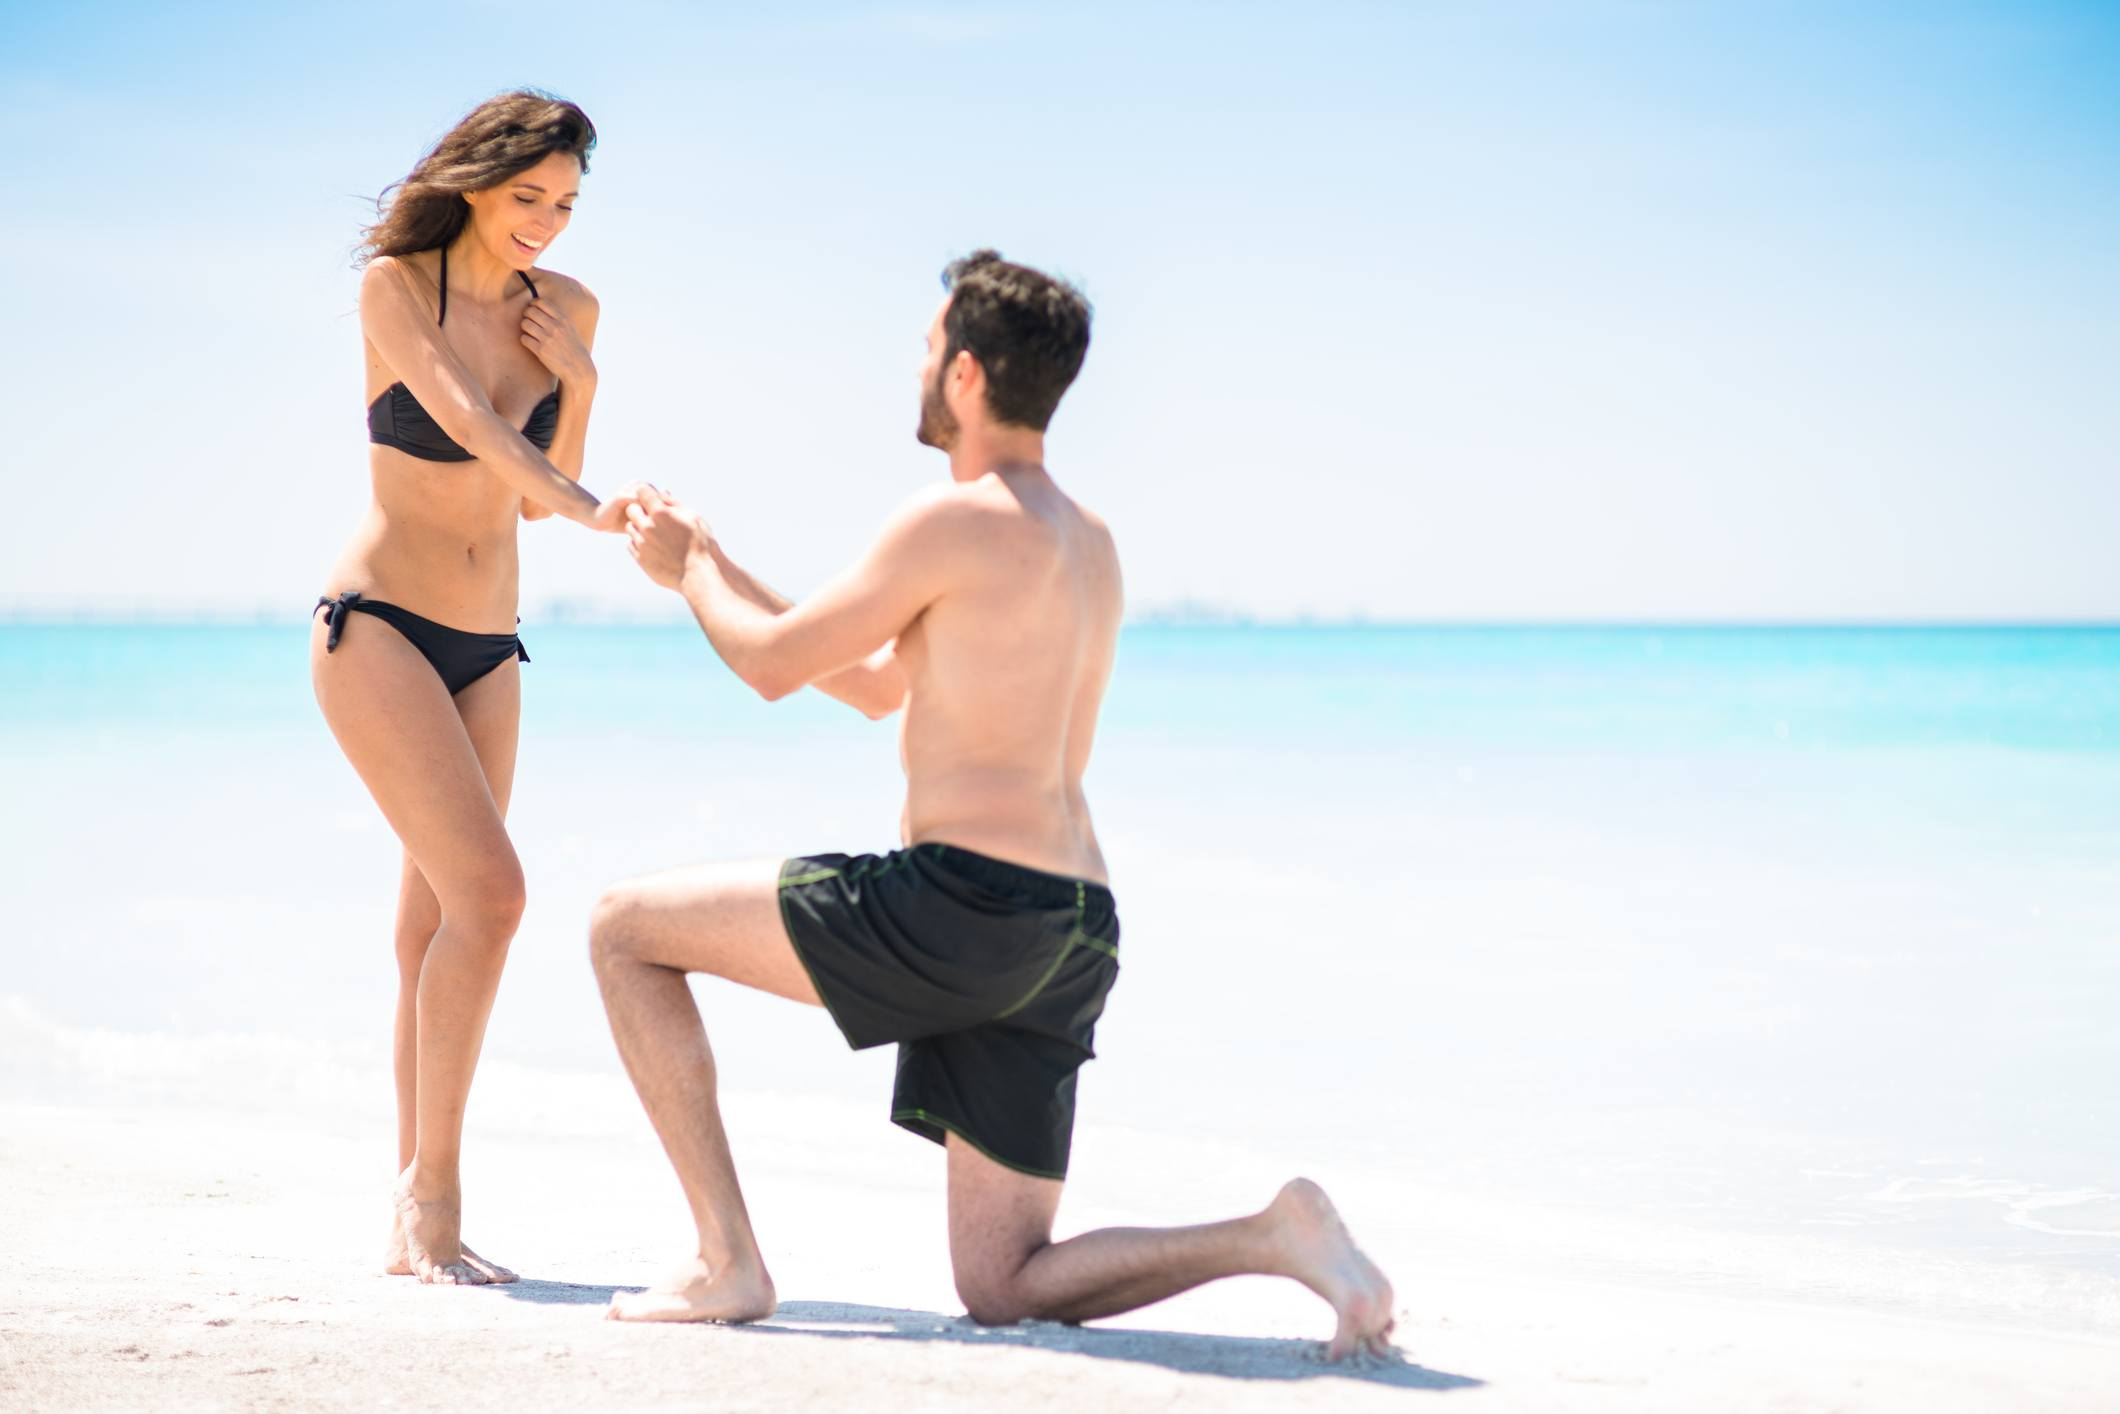 4 Tips For Setting Up A Successful Wedding Proposal